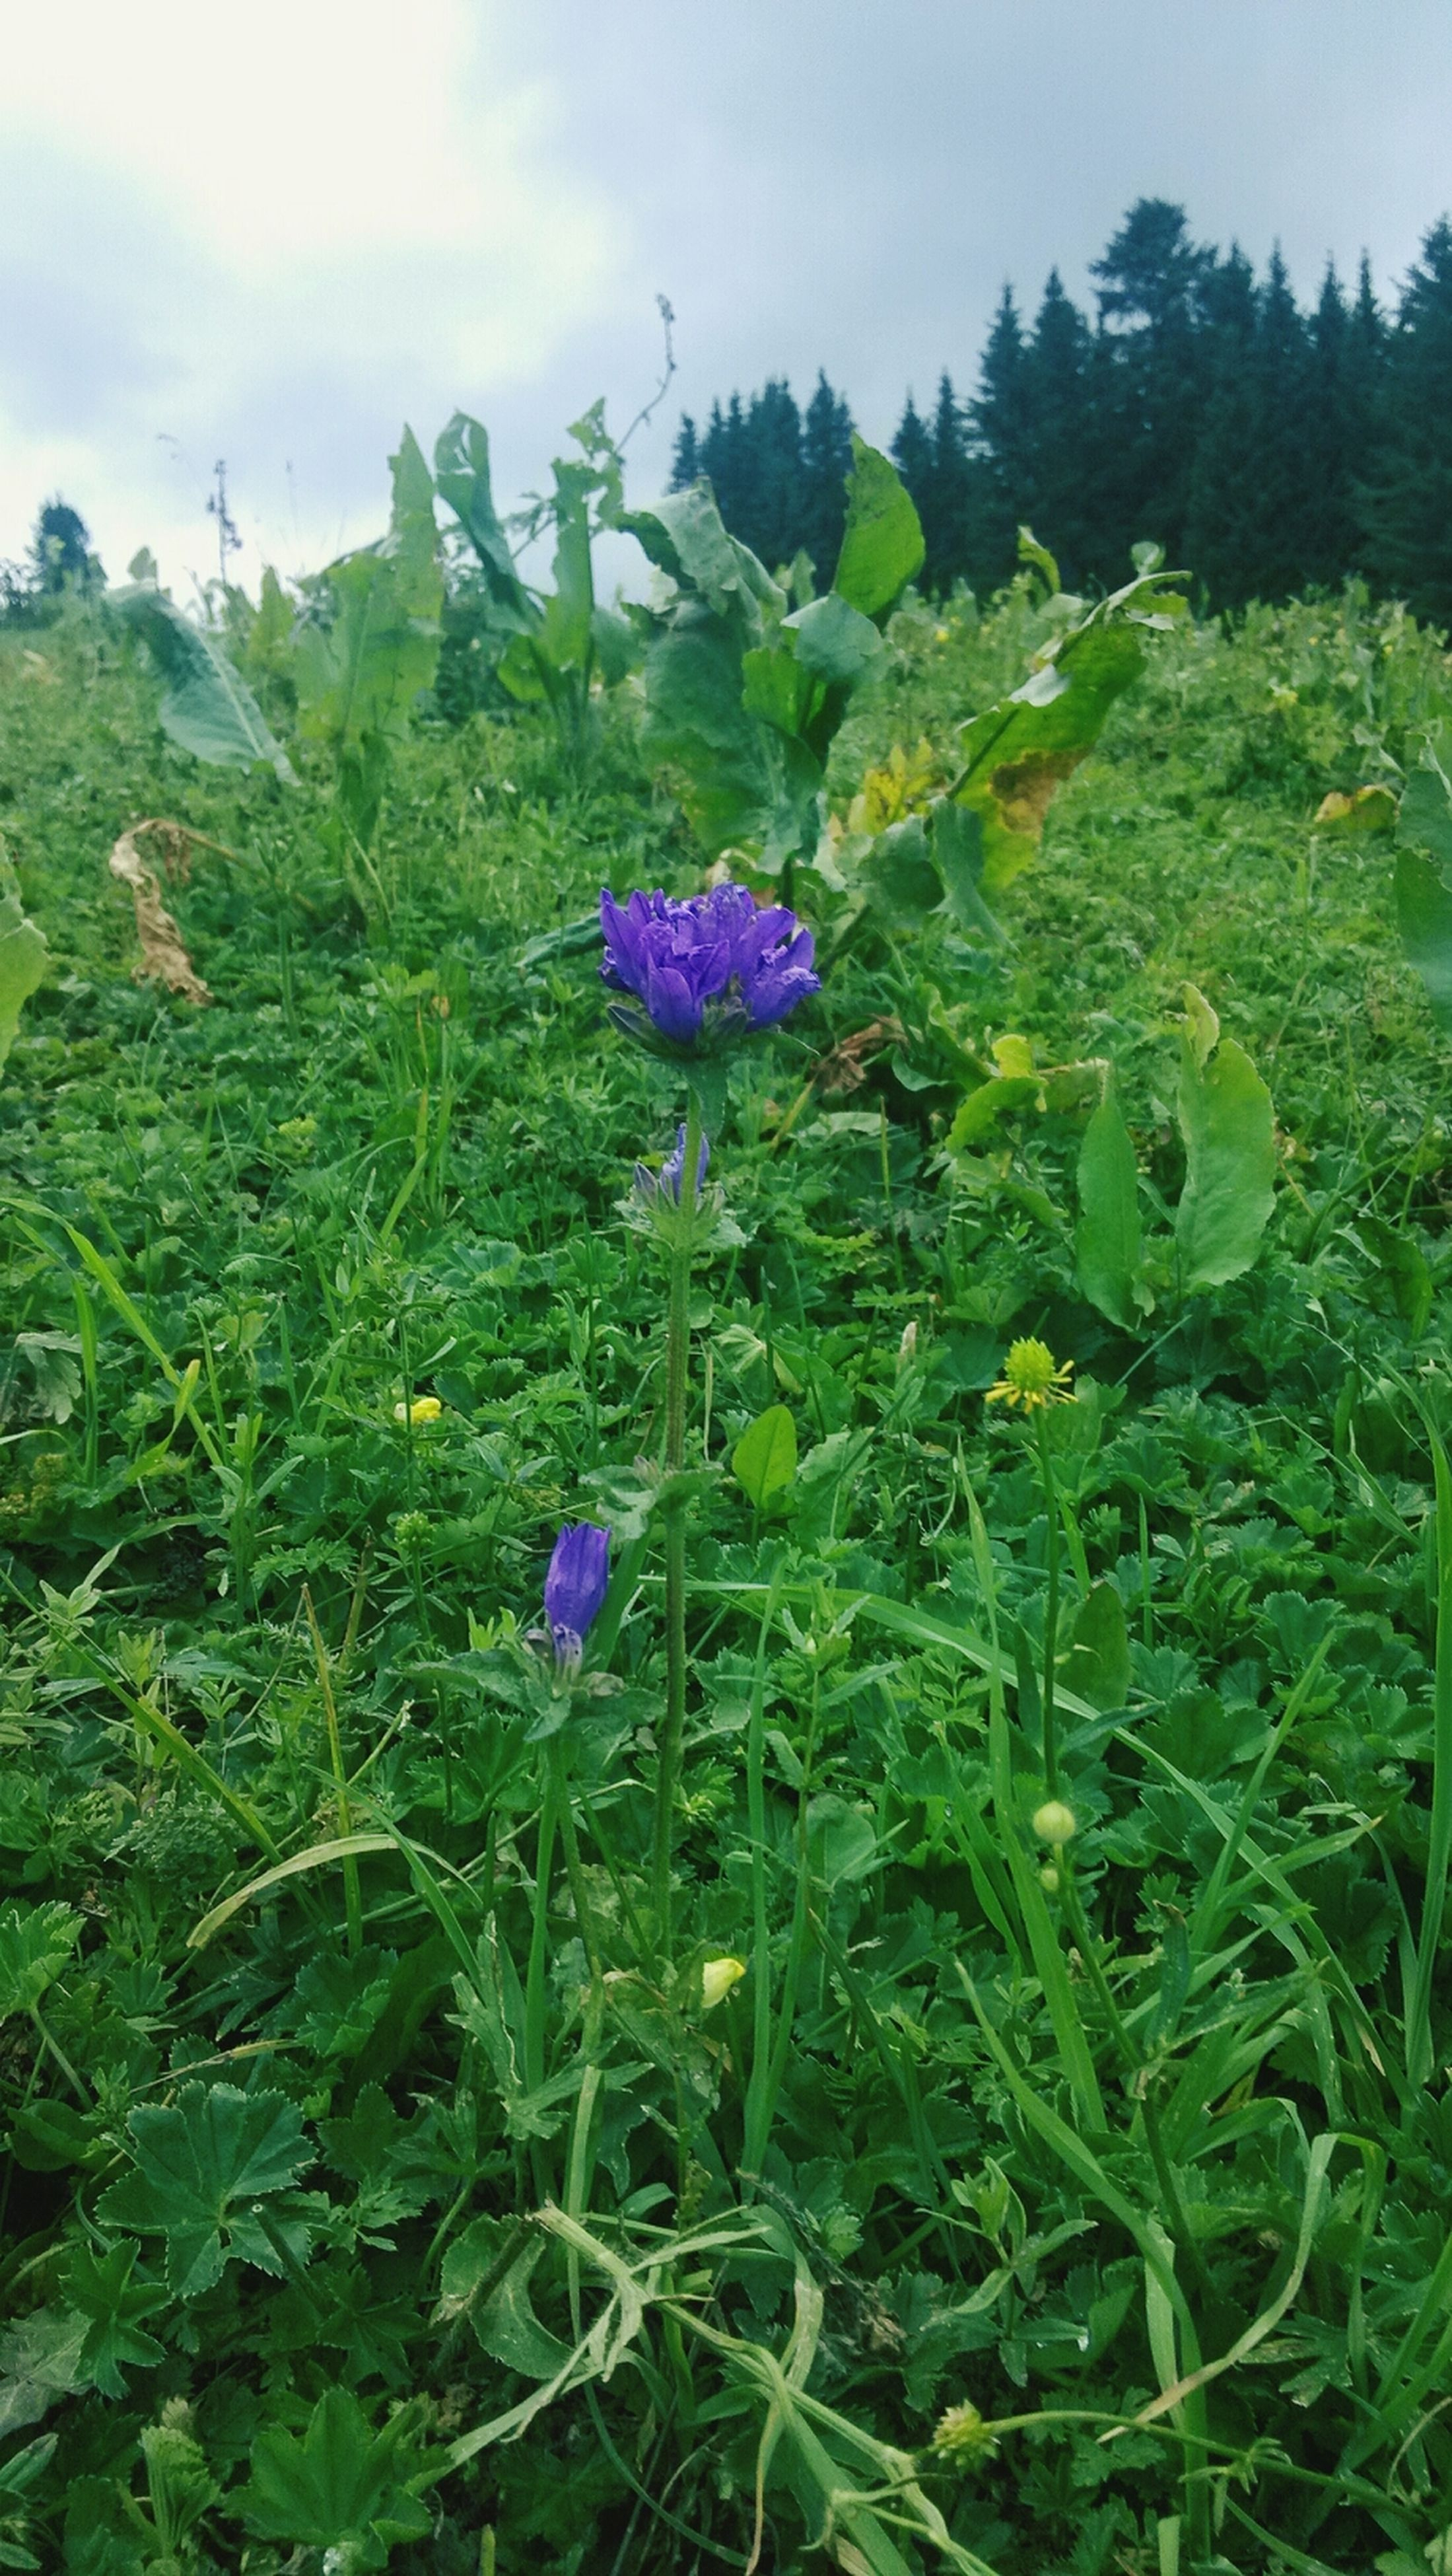 flower, growth, freshness, beauty in nature, green color, fragility, plant, nature, field, purple, blooming, in bloom, wildflower, tranquility, leaf, petal, sky, tranquil scene, flower head, day